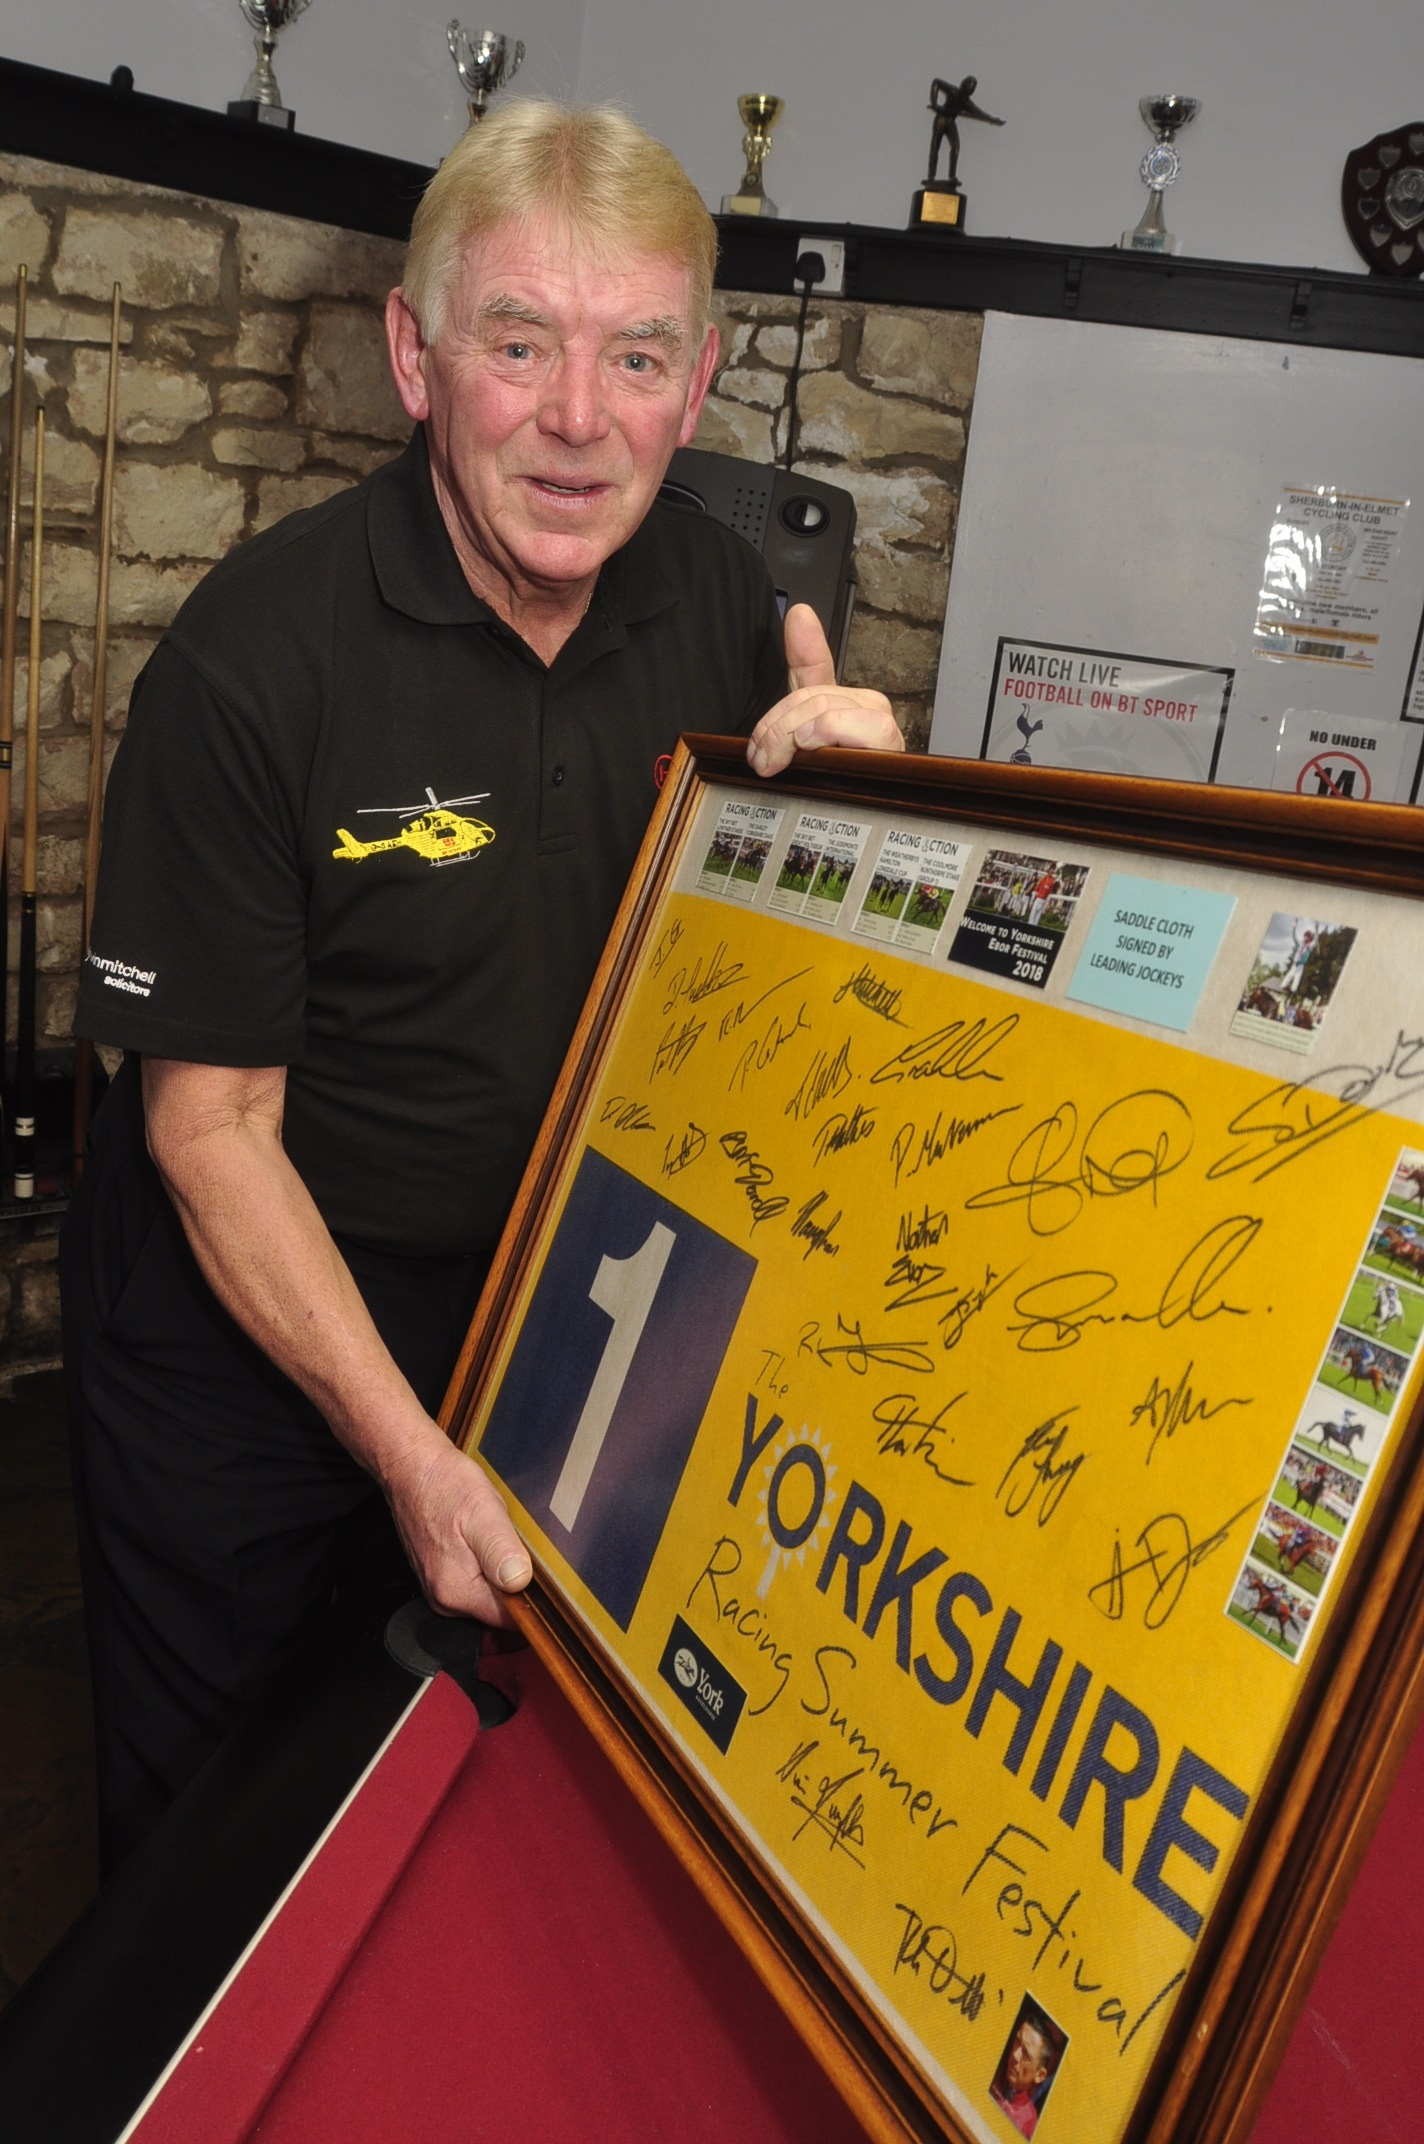 Malcolm Dowson with his mural he has made and raised £500 for Yorkshire Air Ambulance. Picture by Eric Foster